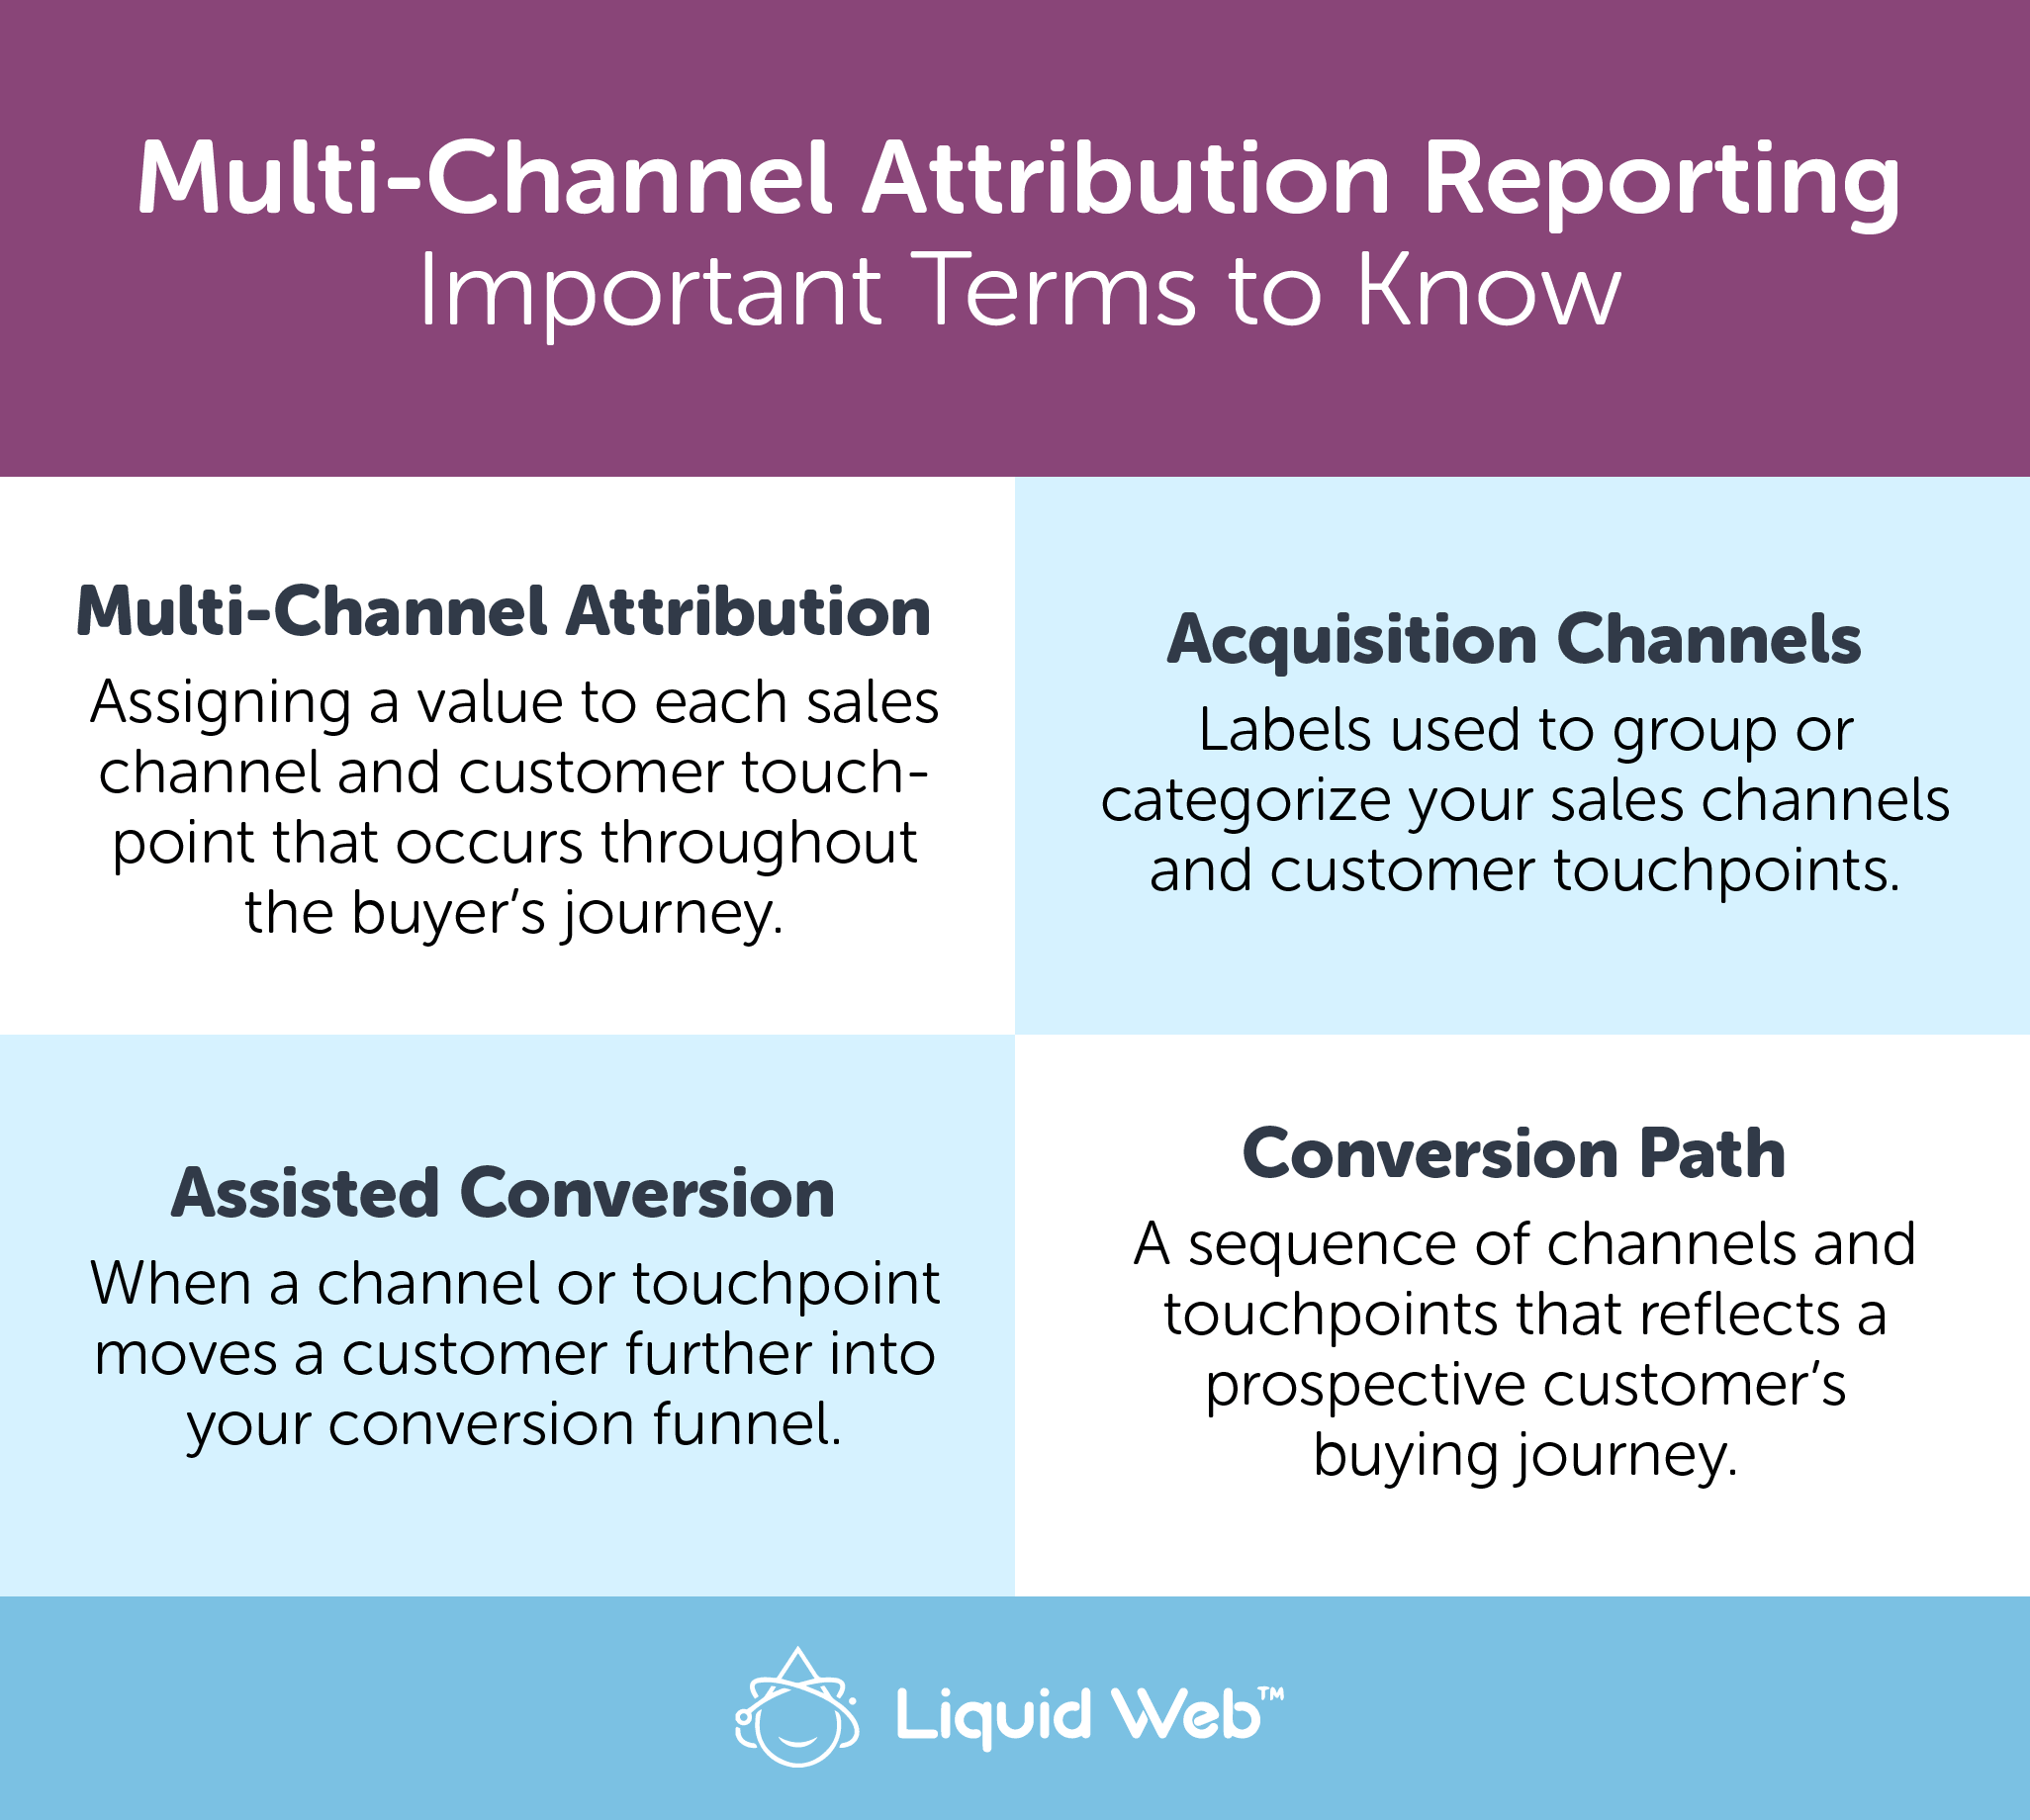 Multi-Channel Attribution Reporting